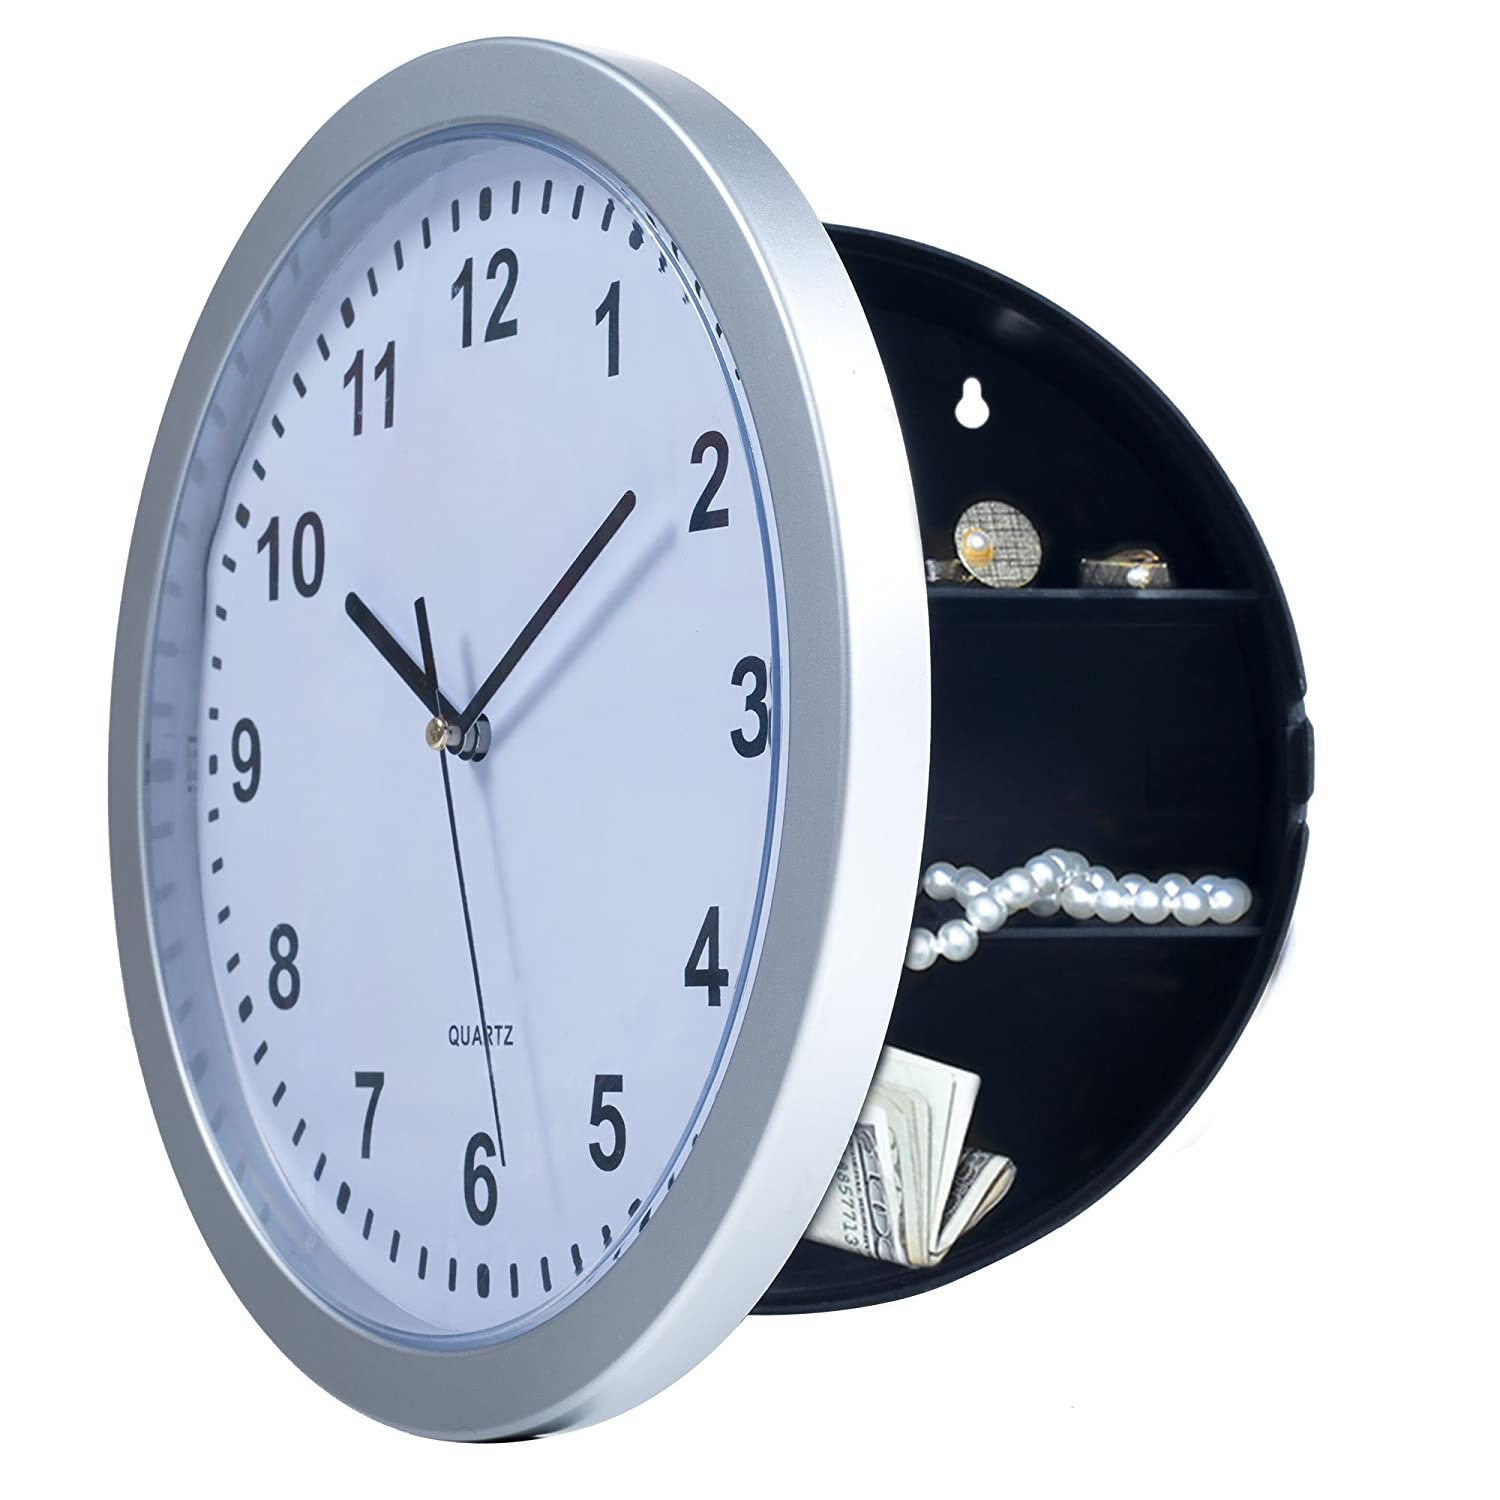 Stalwart 82 5894 wall clock with hidden safe 10 amazon amipublicfo Images